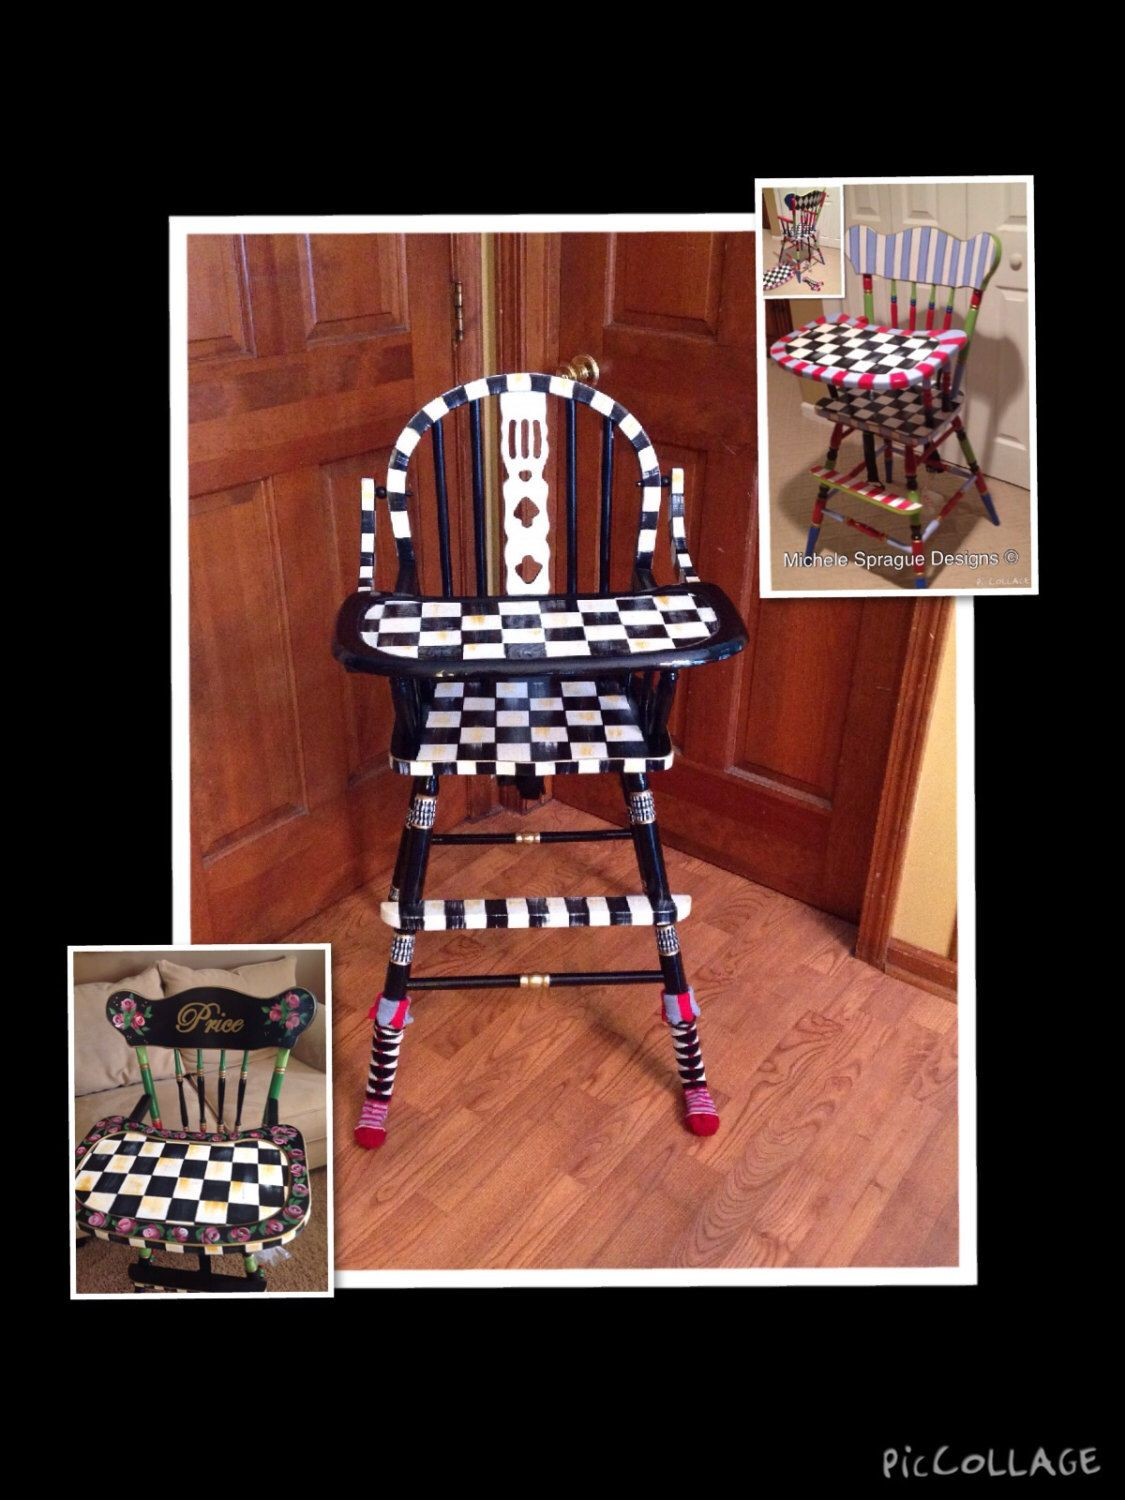 Painted wood high chair - Wood High Chair Custom Painted Black And White Checks Whimsical Furniture By Michelespraguedesign On Etsy Https